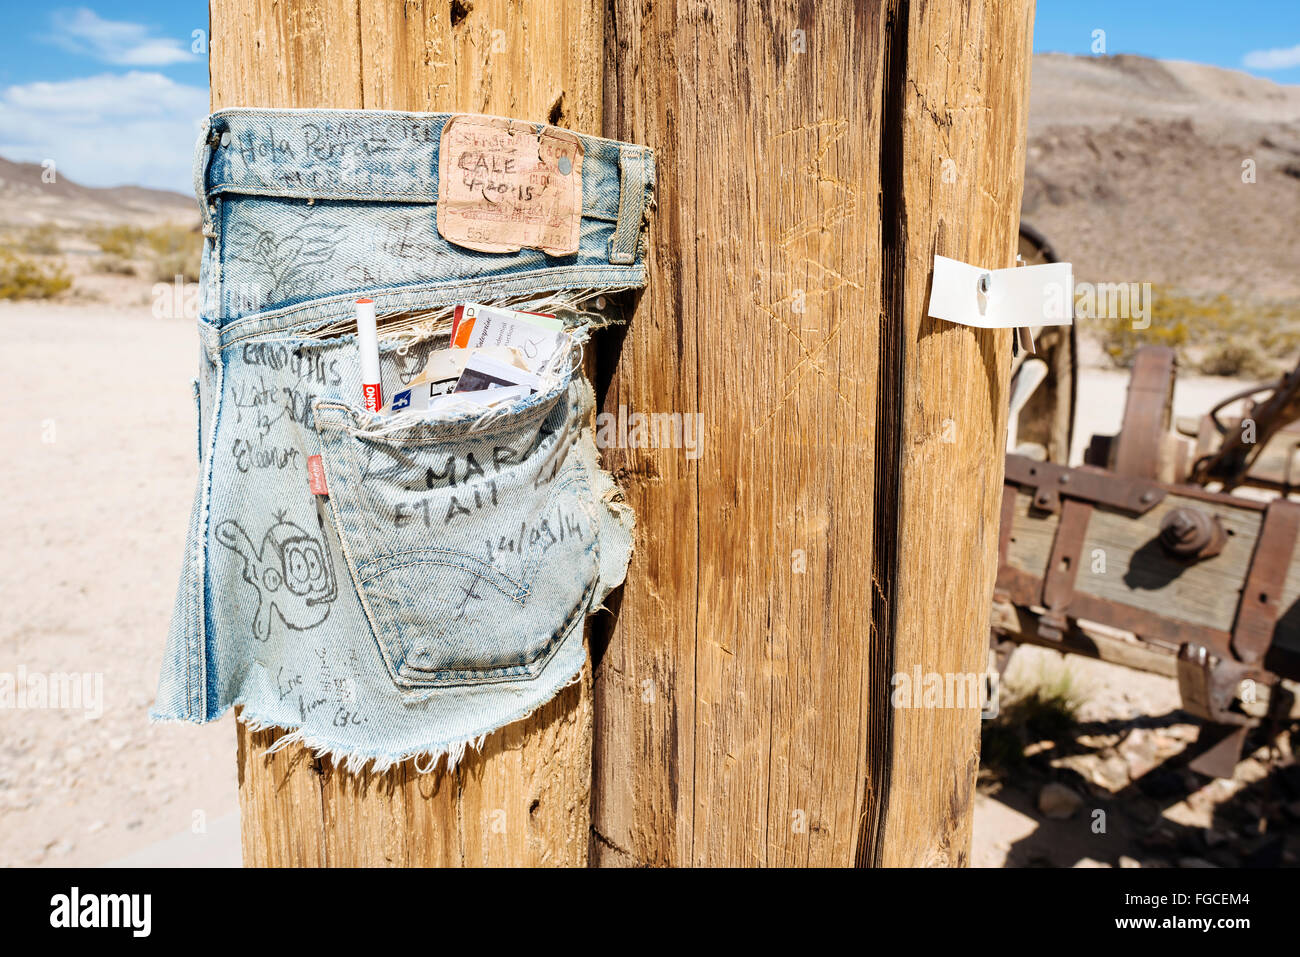 A pair of denim shorts serve as a canvas in Goldwell Open Air Museum, Rhyolite, Nevada - Stock Image